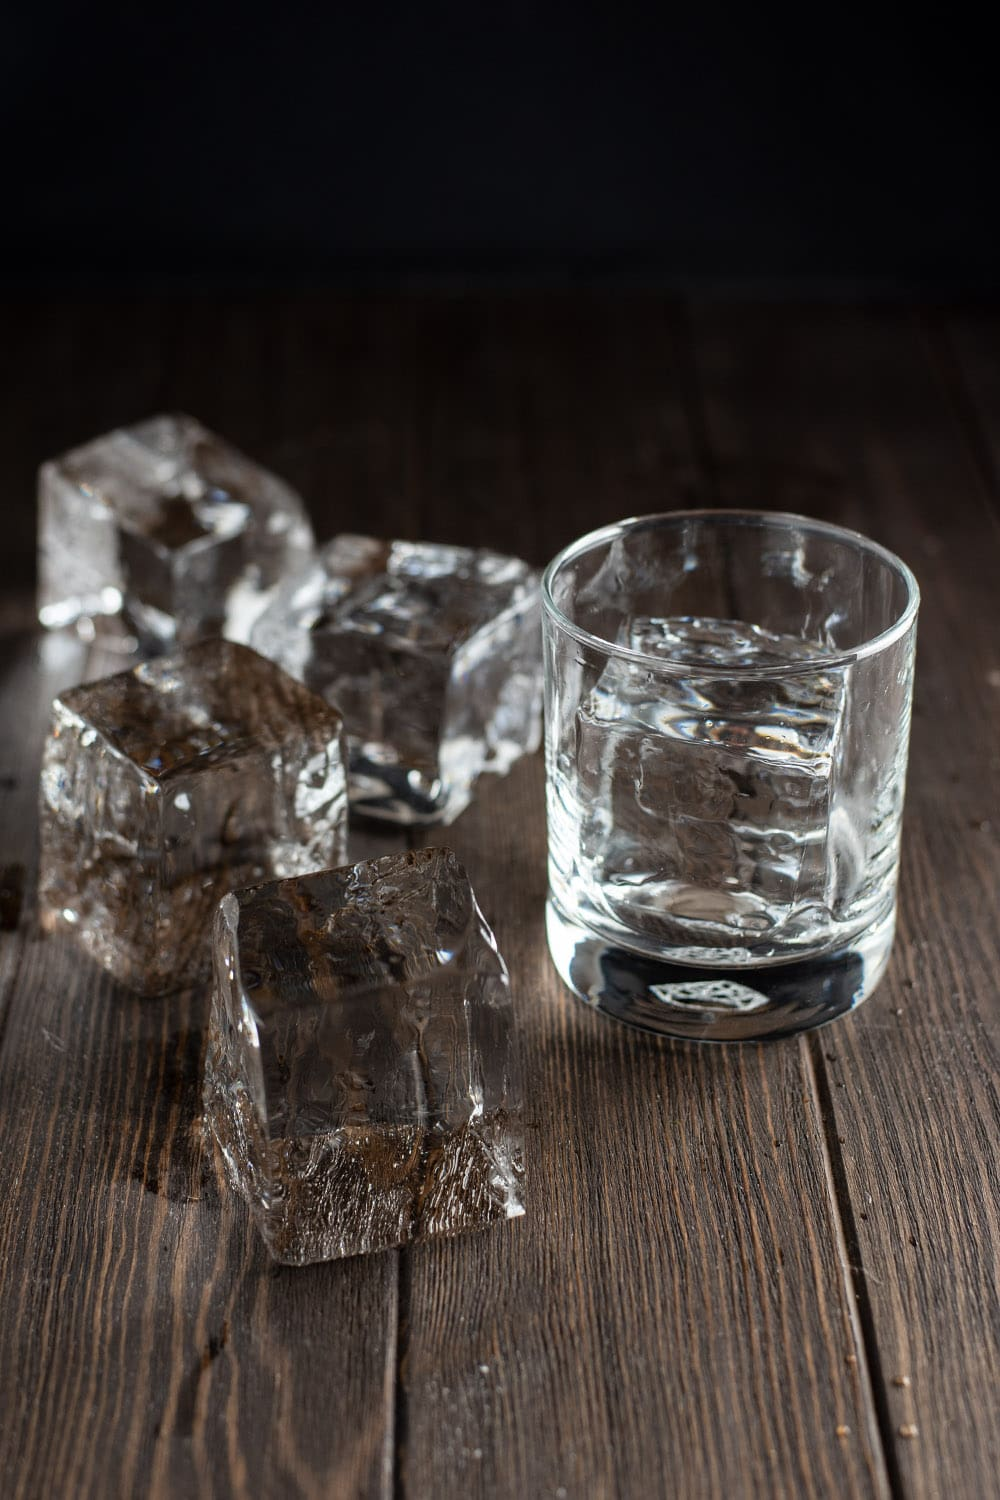 Clear ice in cocktail glass